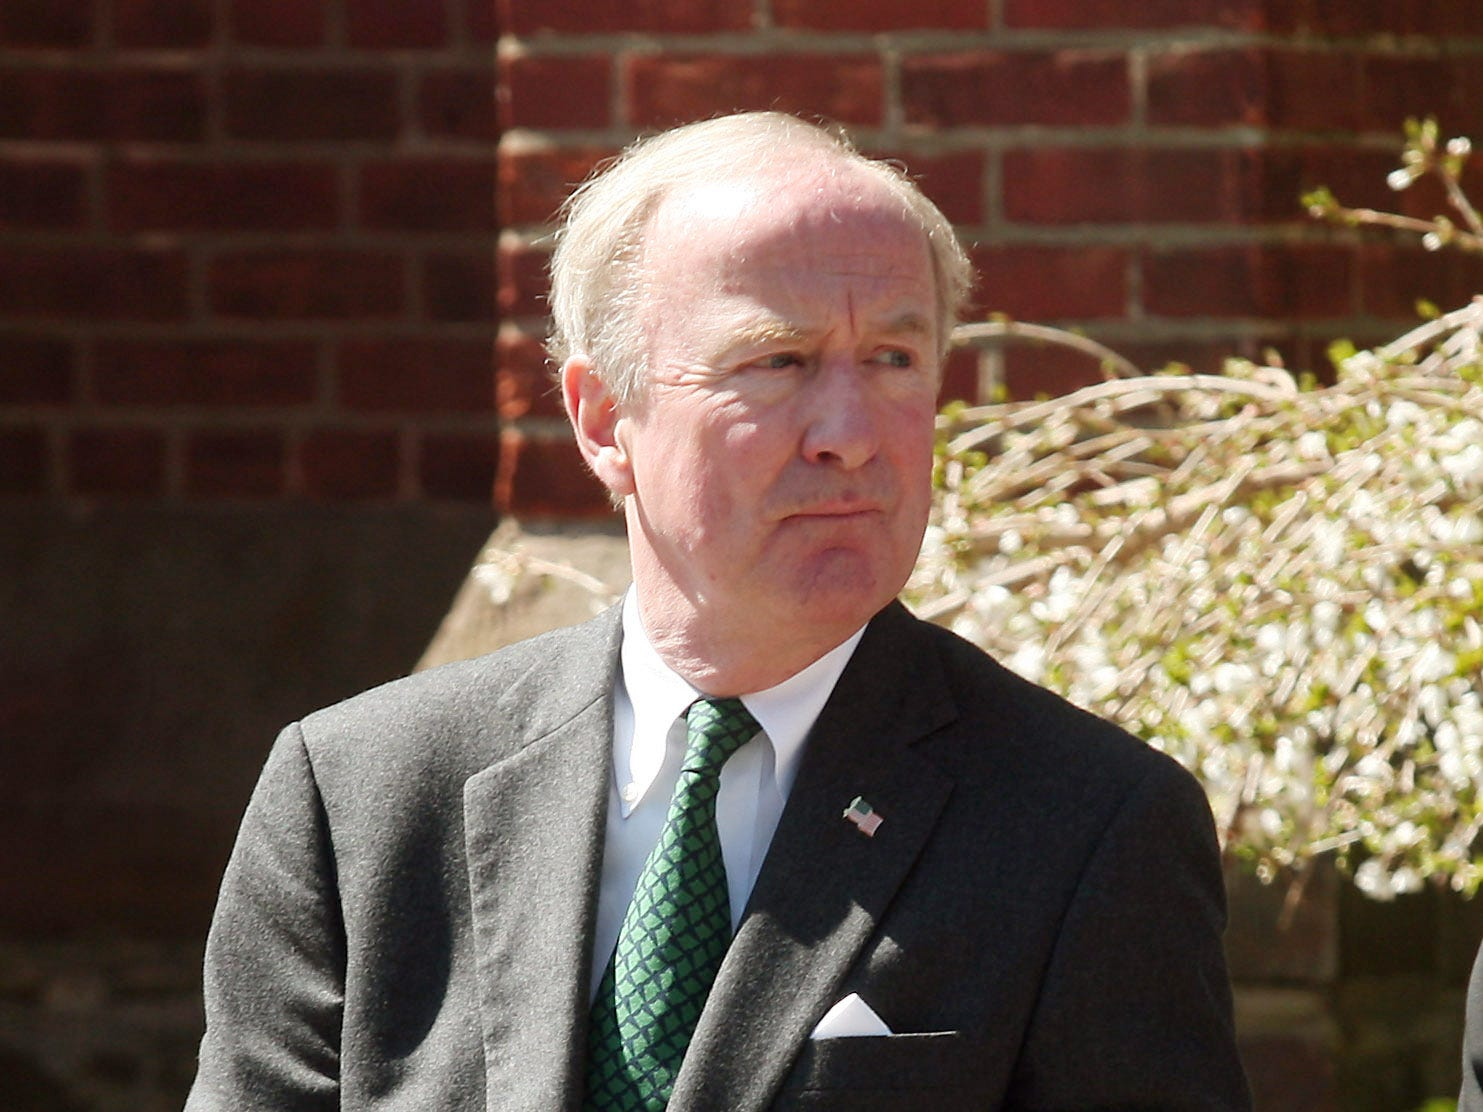 Congressman Rodney Frelinghuysen leaves the the Church of the Assumption in Morristown after funeral Mass for Col. Peter J. O'Hagan Jr., where Freinghuysen gave the eulogy for the former Morris County Freeholder & Mayor of Morris Twp. April 17, 2014, Morristown, NJ. Bob Karp/staff photographer